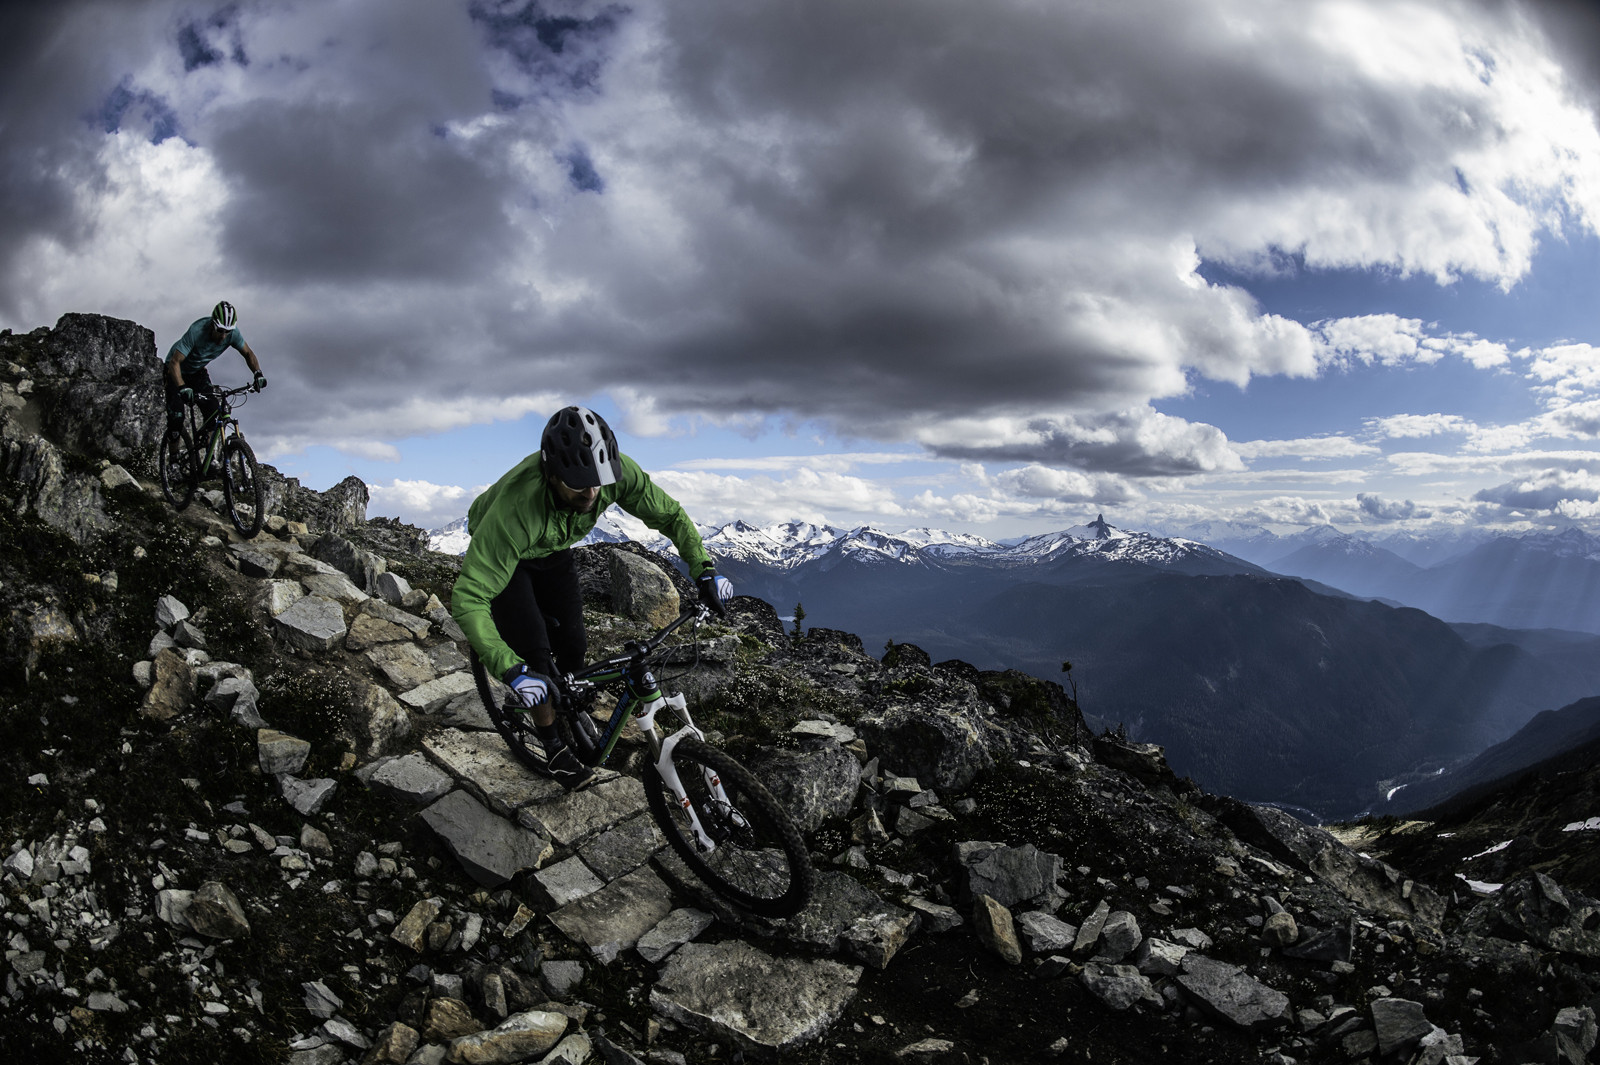 Check Out that Backdrop - First Look: 2014 Rocky Mountain Altitude Rally Edition - Get Rowdy! - Mountain Biking Pictures - Vital MTB